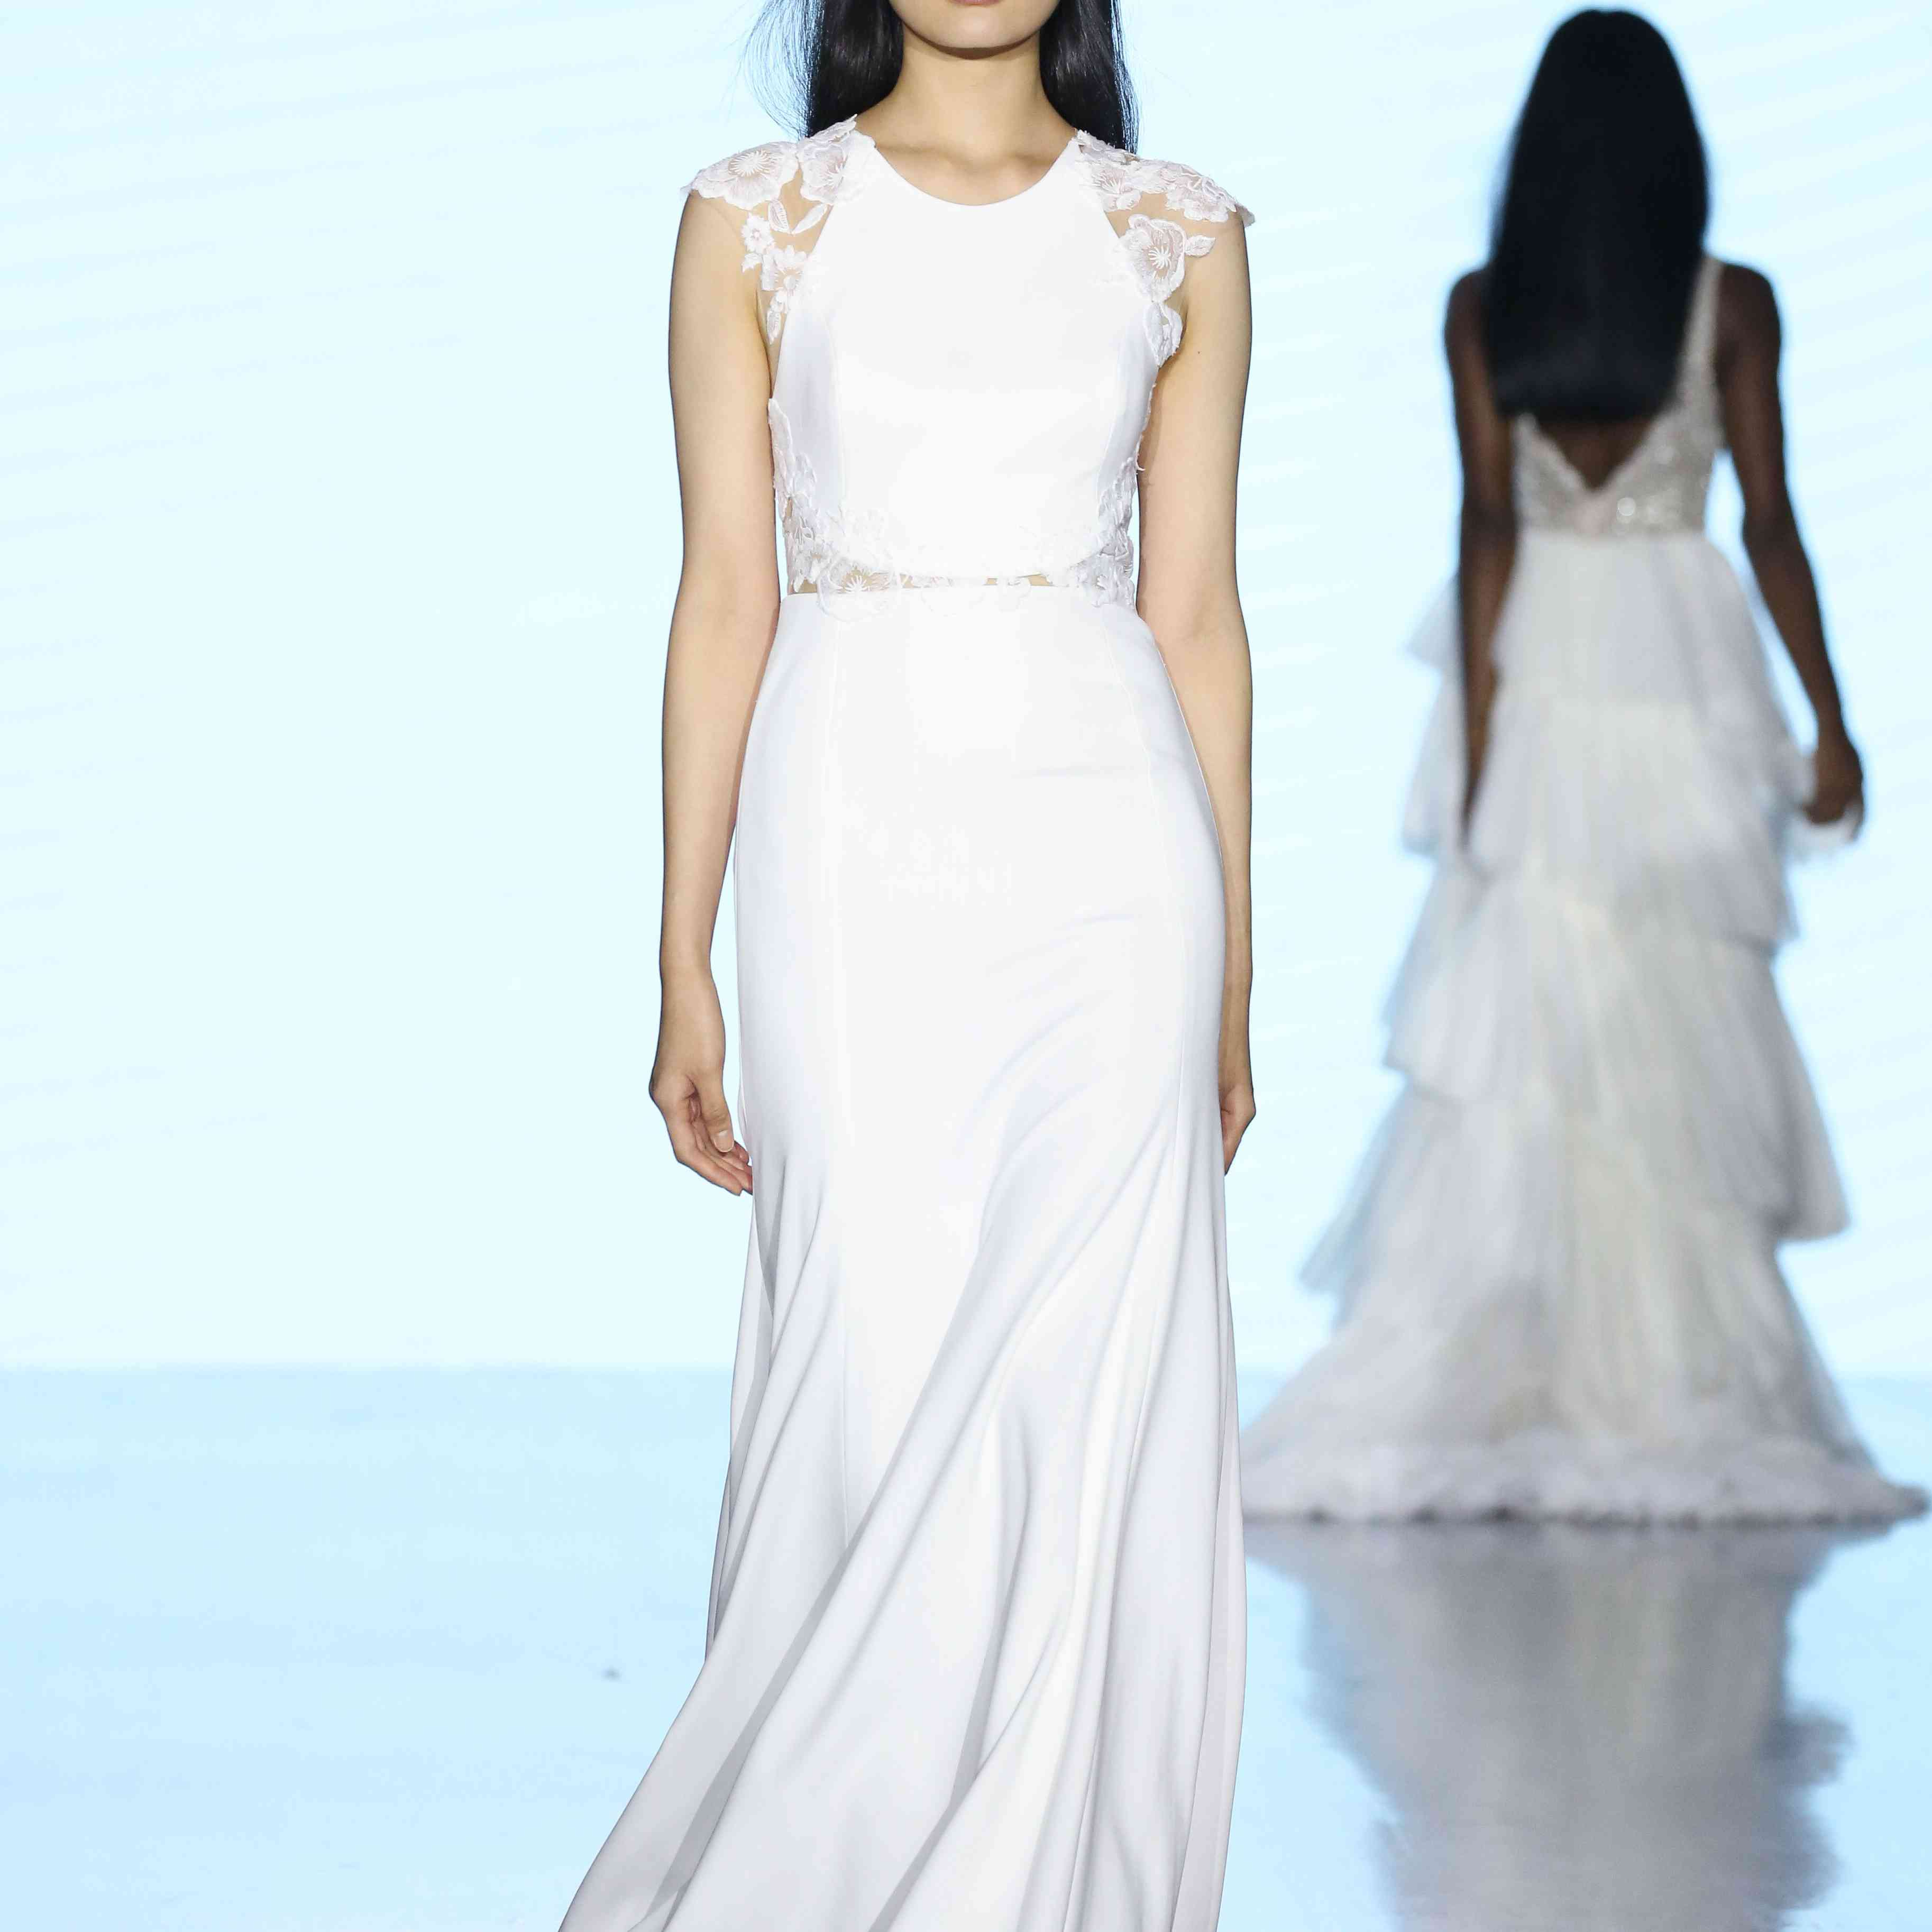 Model in crepe sheath dress with floral lace cap sleeves and side cutouts